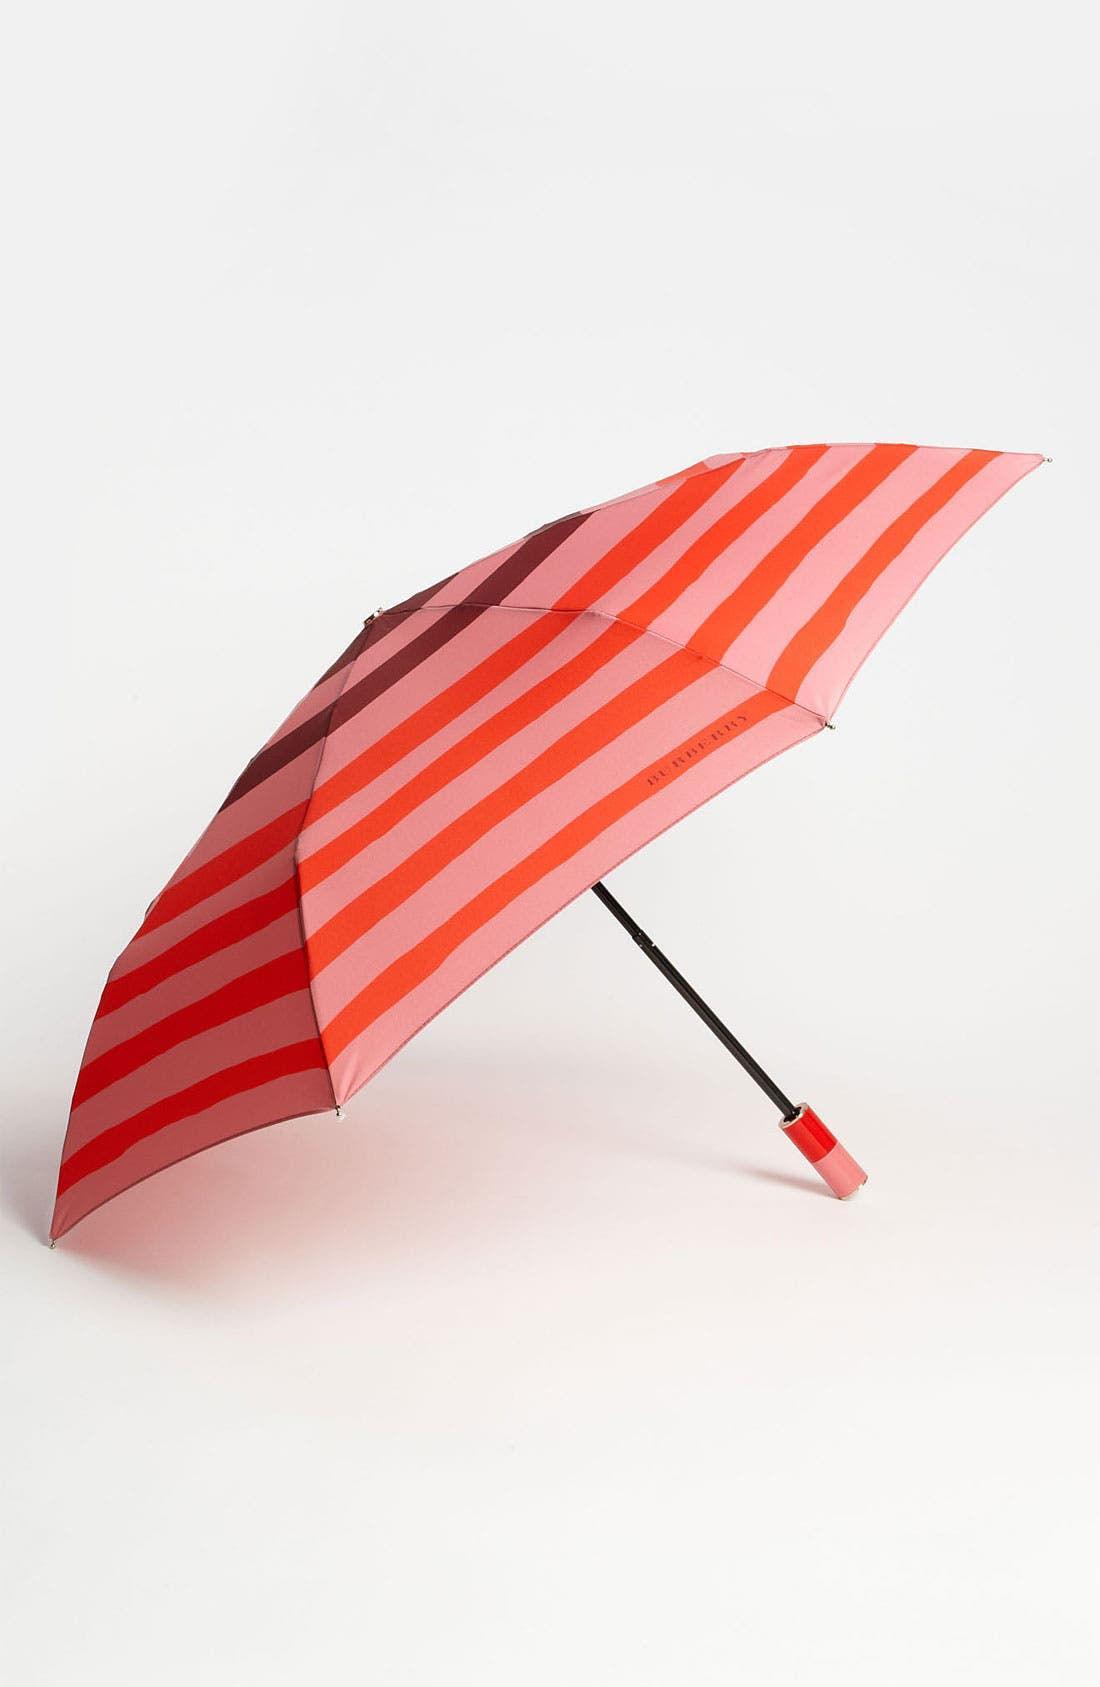 Main Image - Burberry Trafalgar Stripe Folding Umbrella